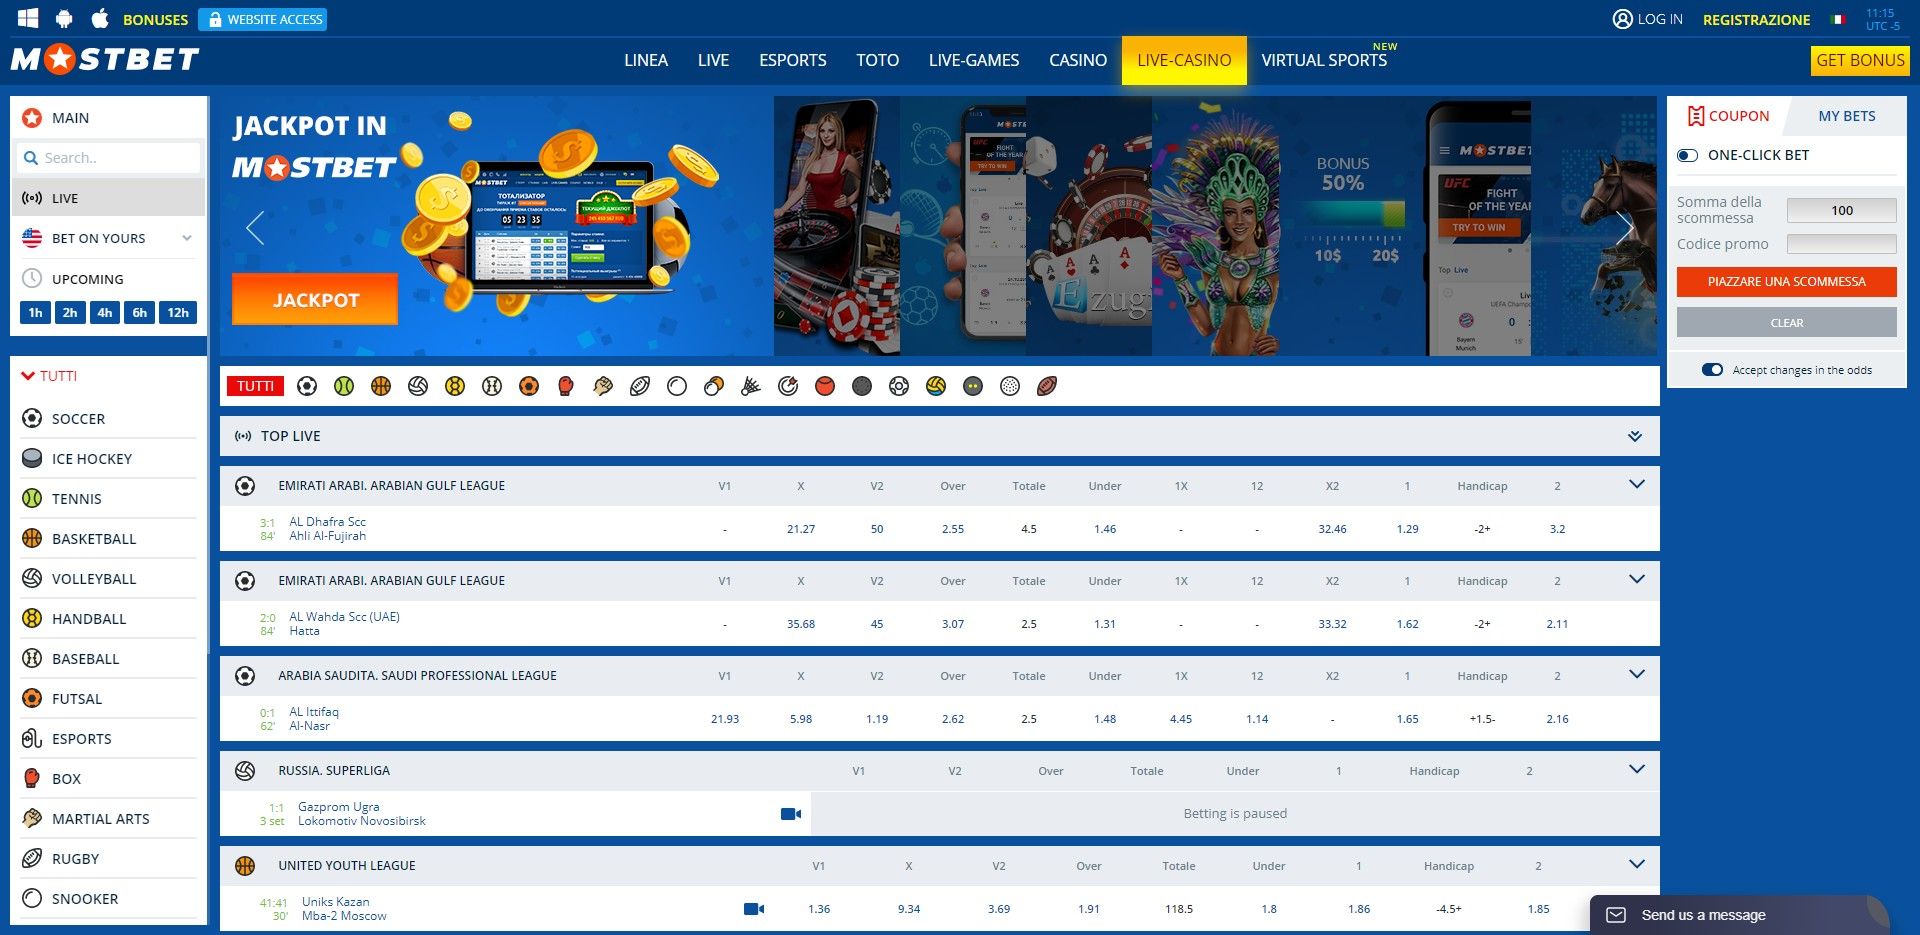 MOSTBET Preview